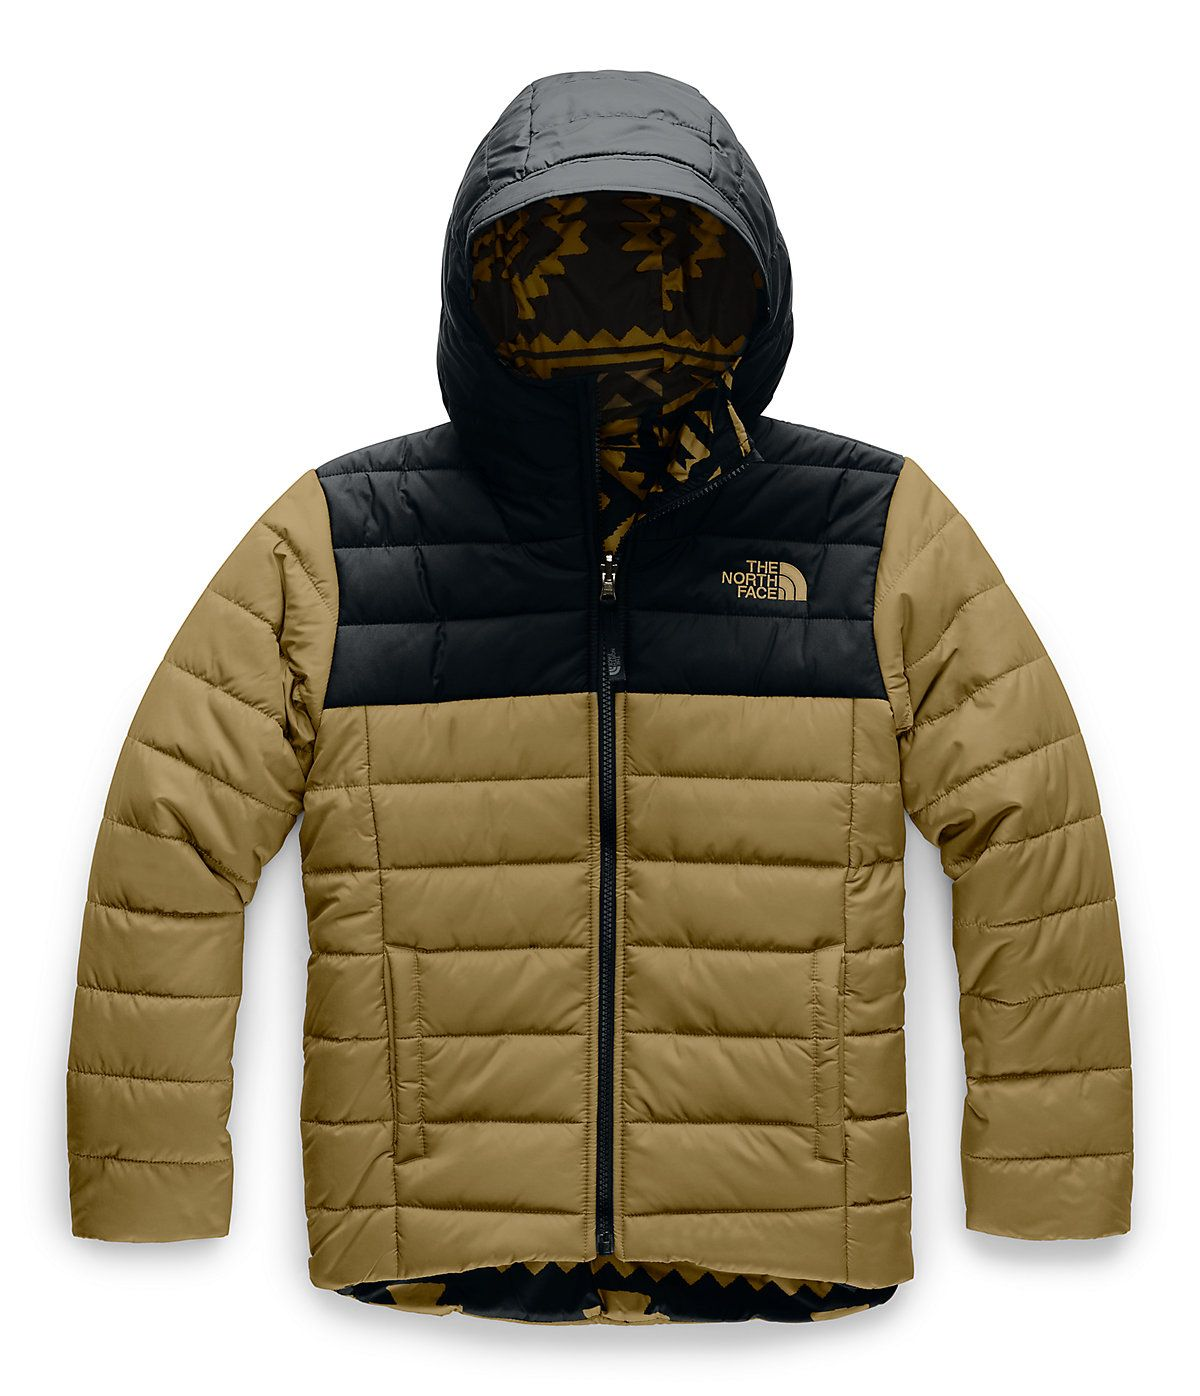 Boys Reversible Perrito Jacket The North Face Custom Leather Jackets Boys Jacket The North Face [ 1396 x 1200 Pixel ]